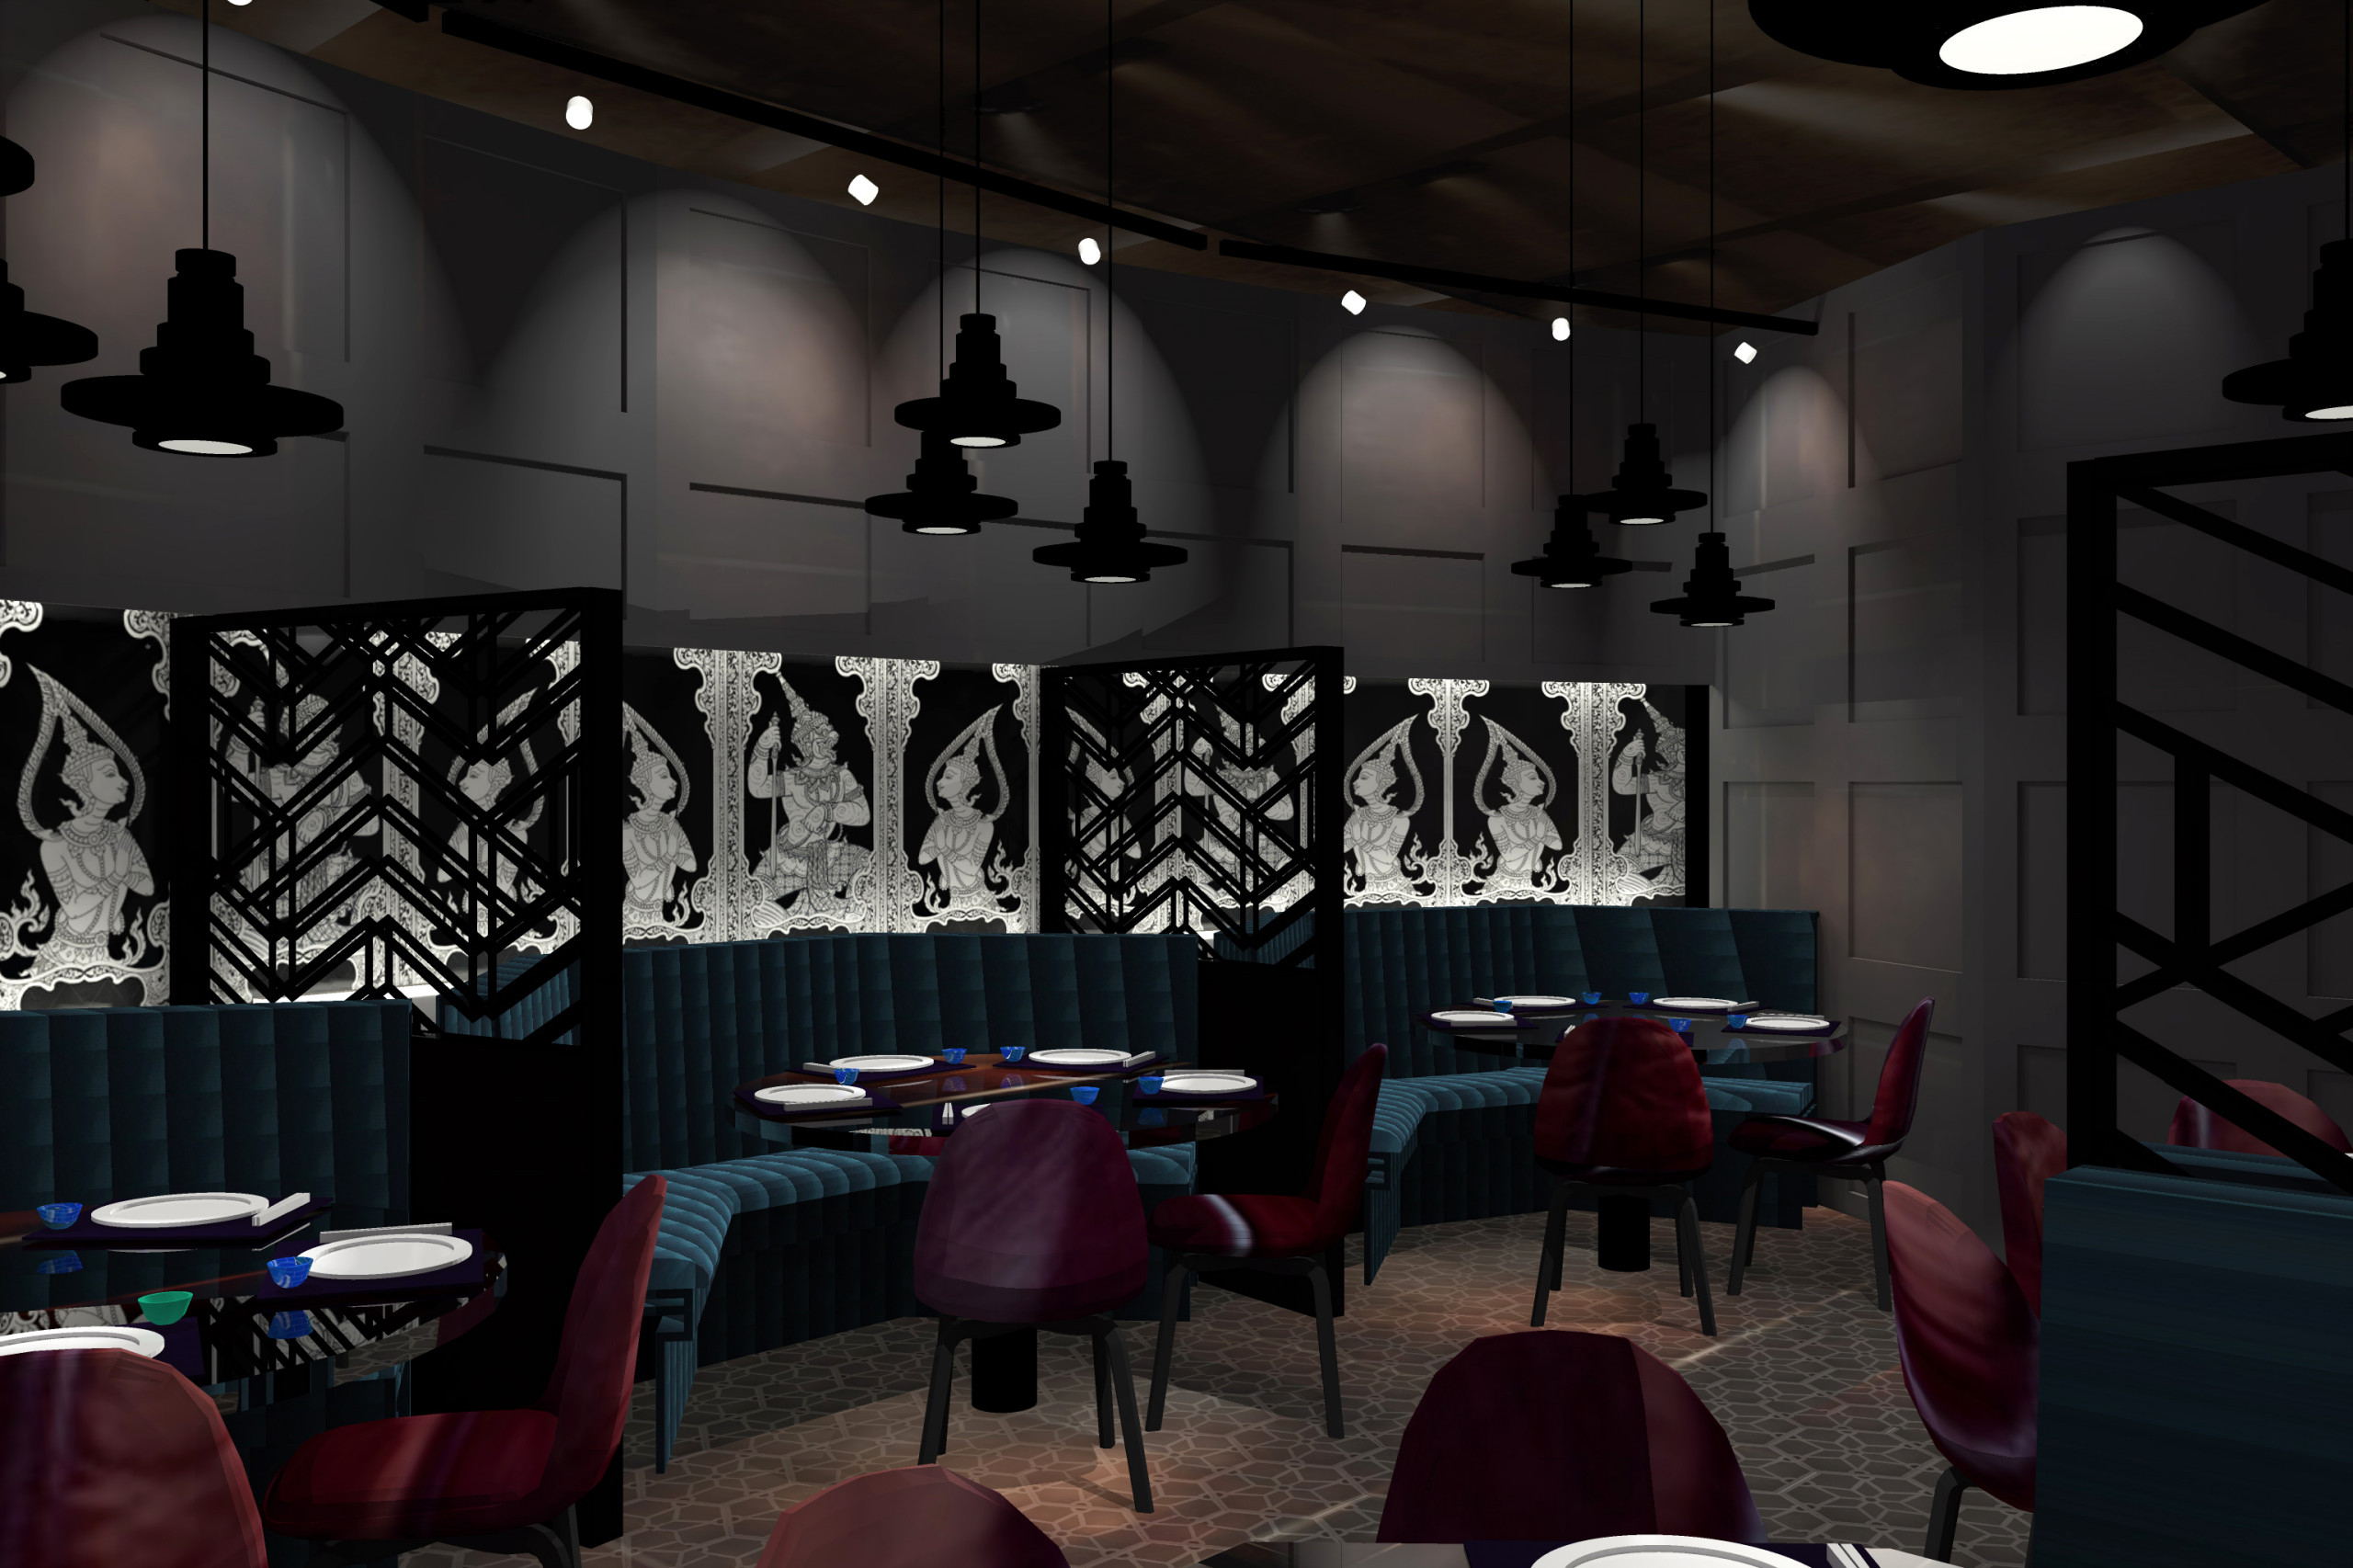 Restaurant Photos and Illustrations